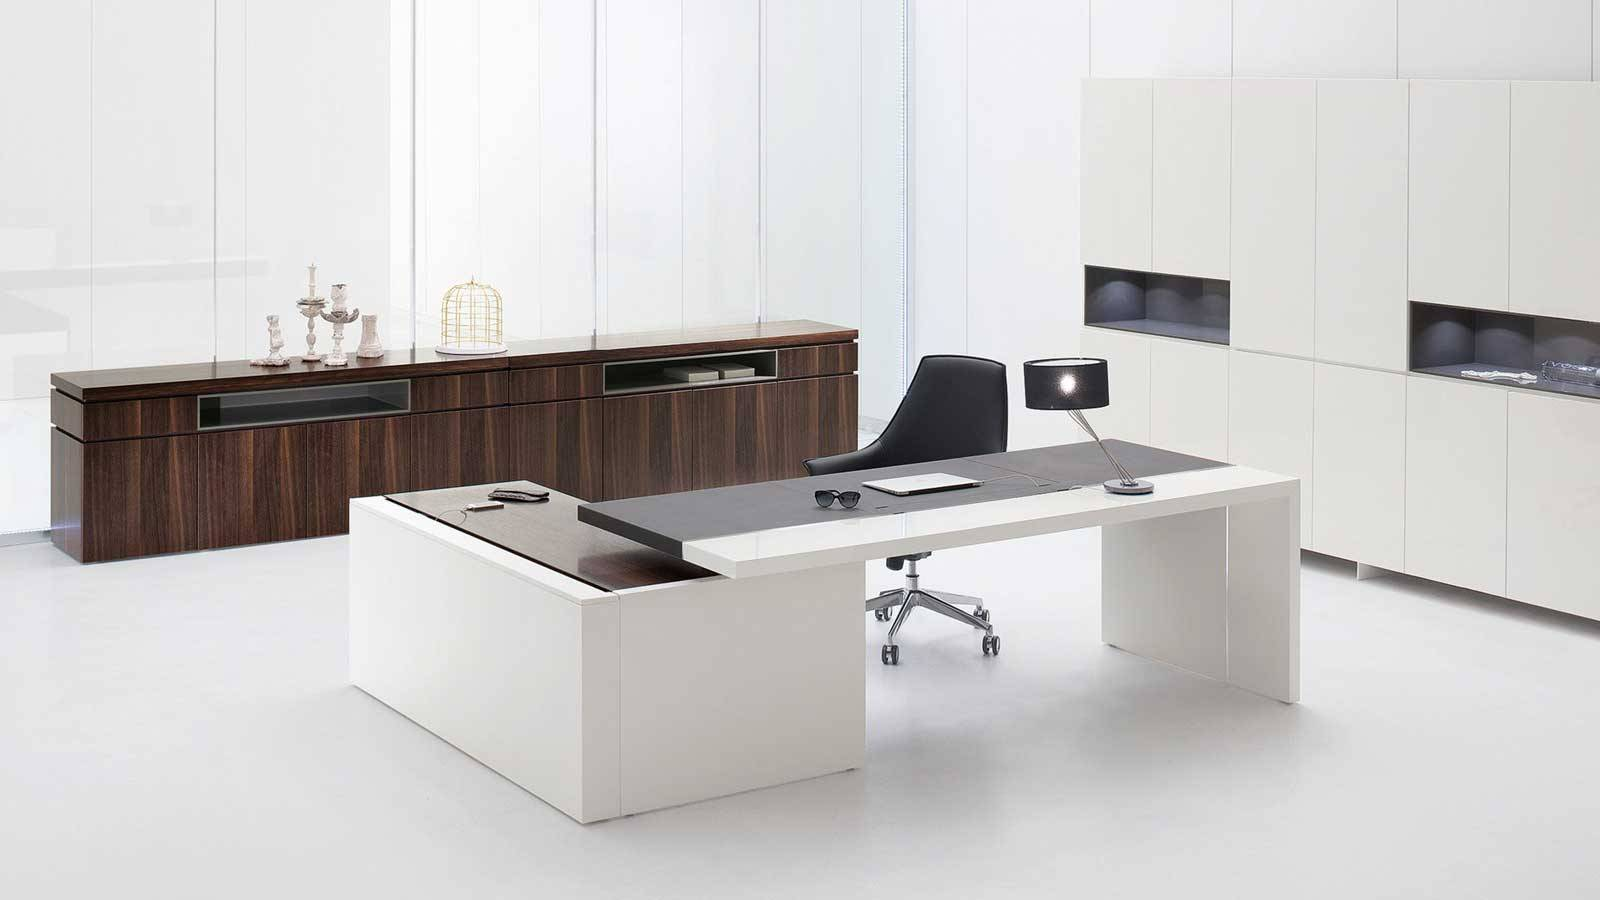 office design system by Perin & Topan for Archiutti